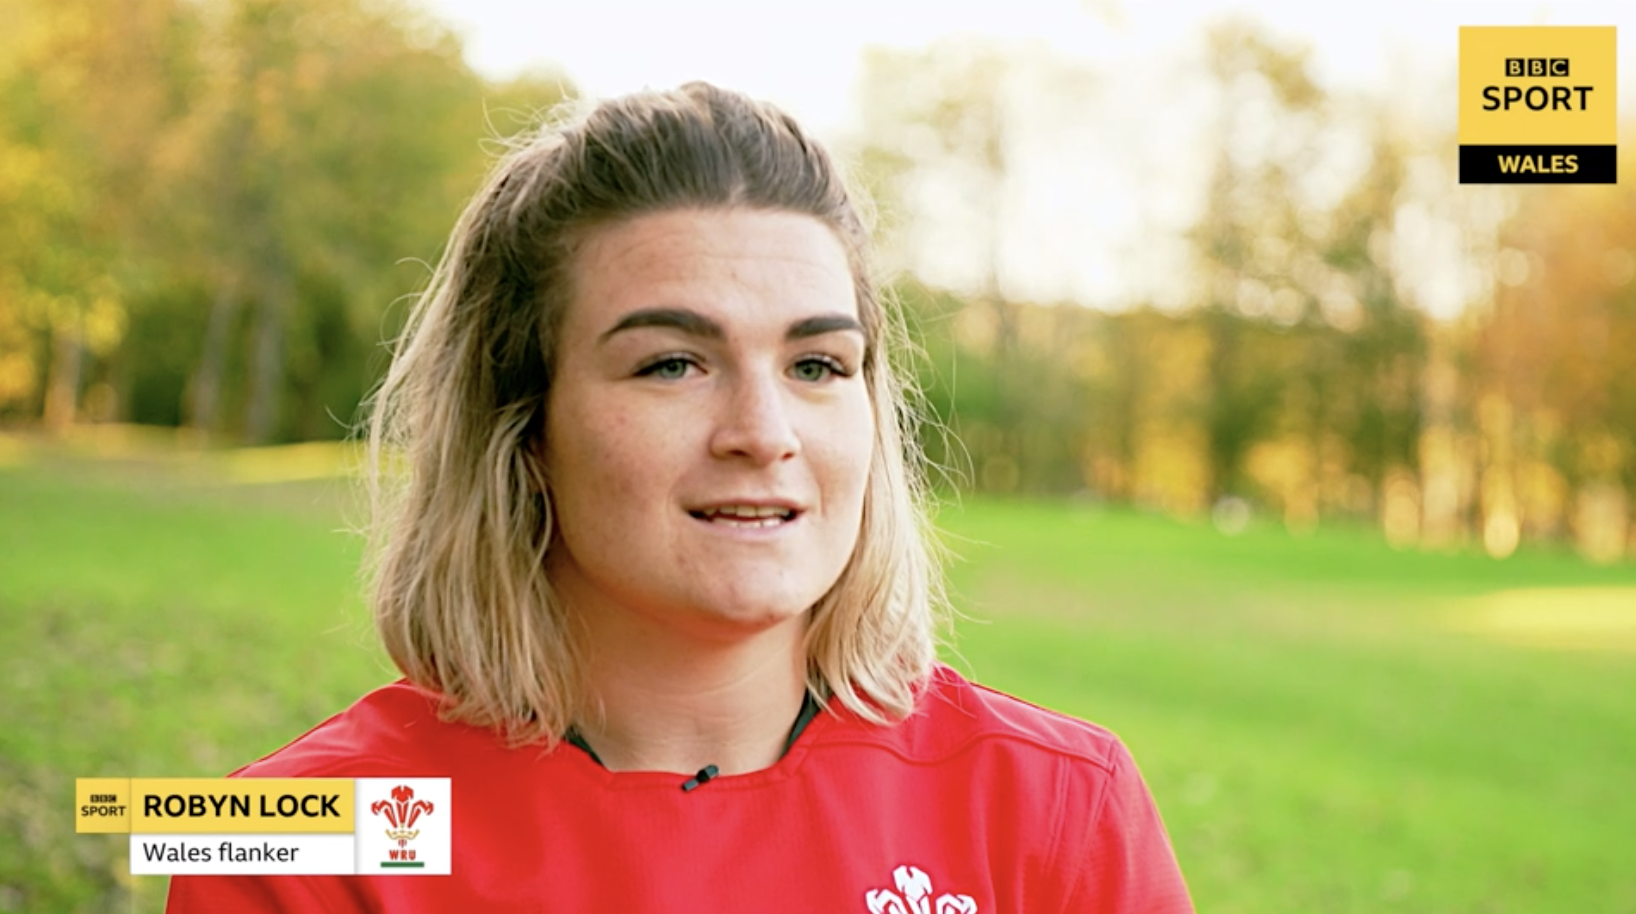 didi rugby franchise owner Robyn Lock wearing her Wales jersey